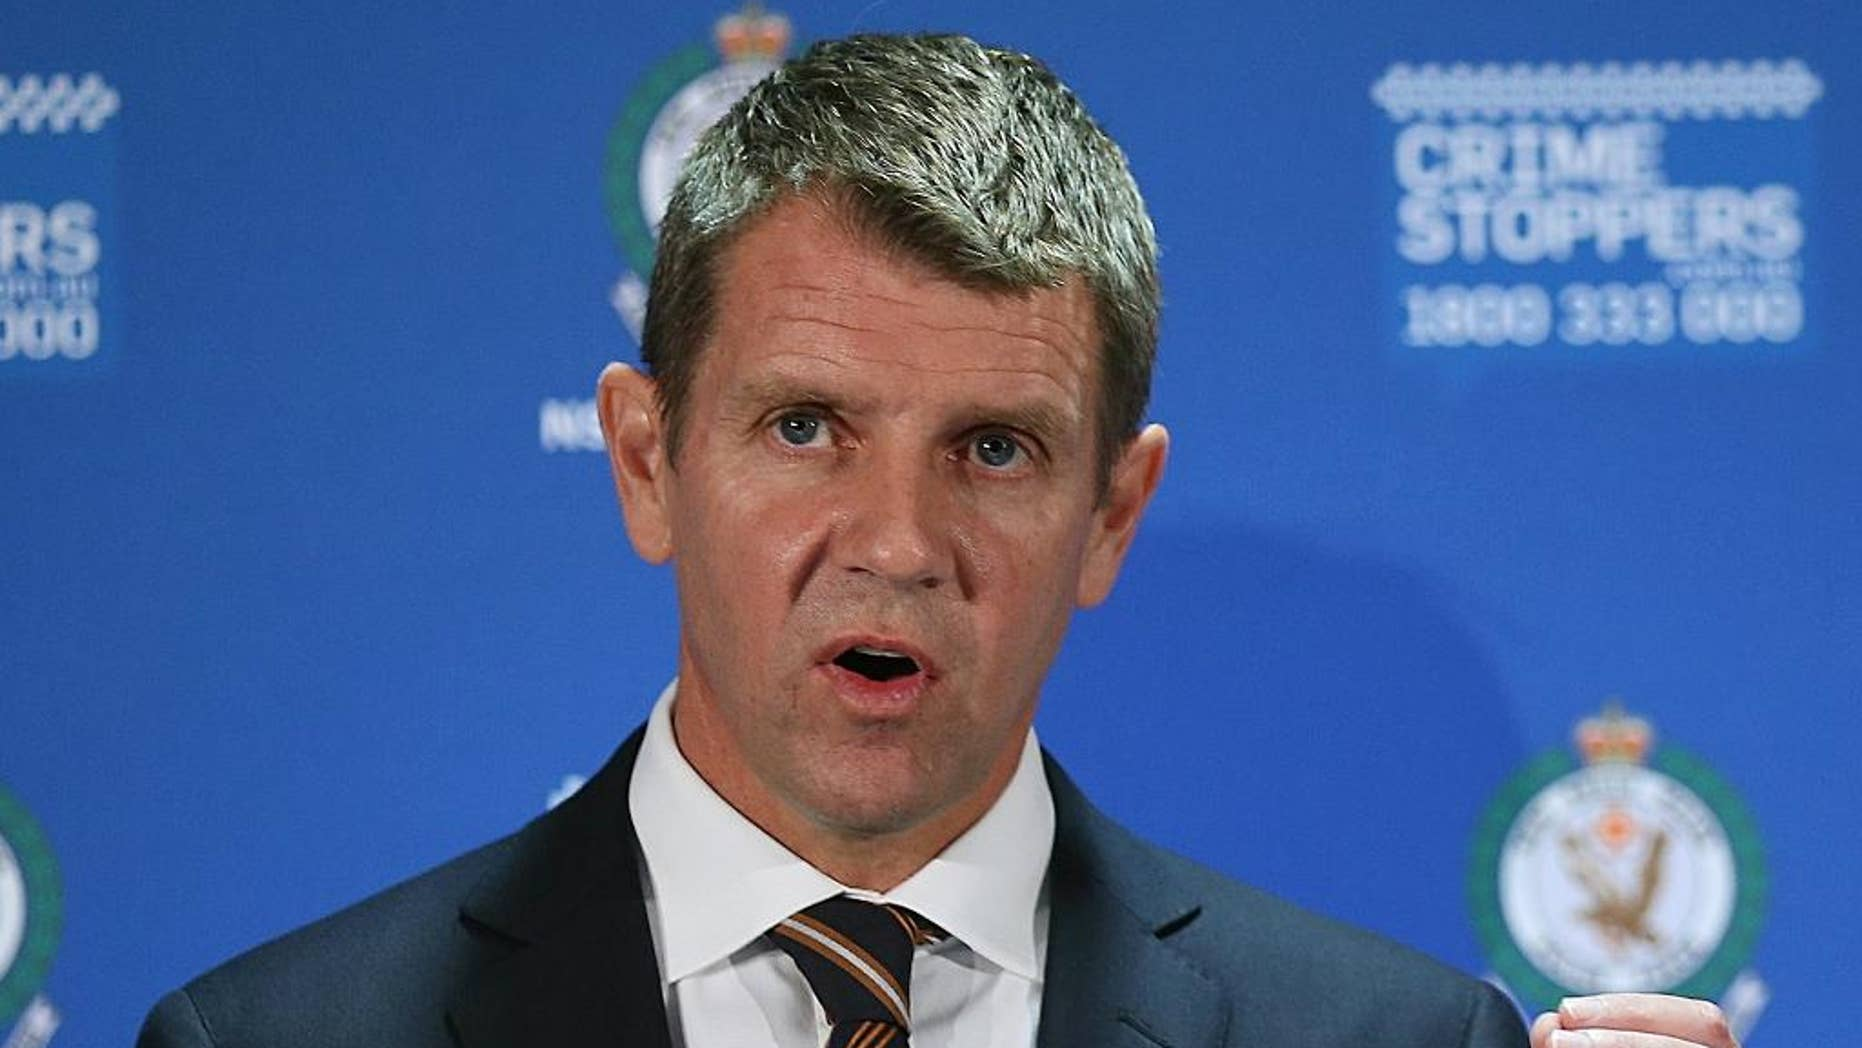 FILE - In this Dec. 16, 2015 file photo, New South Wales Premier Mike Baird speaks to the media during a press conference after a Lindt cafe siege at Martin Place in the central business district of Sydney, Australia. The leader of Australia's most populous state resigned Thursday, Jan. 19, 2017, after his popularity plummeted over a series of decisions during 2016. Baird used social media to announce that the ruling Liberal Party would elect a new leader at a meeting on Tuesday. (AP Photo/Rob Griffith, File)